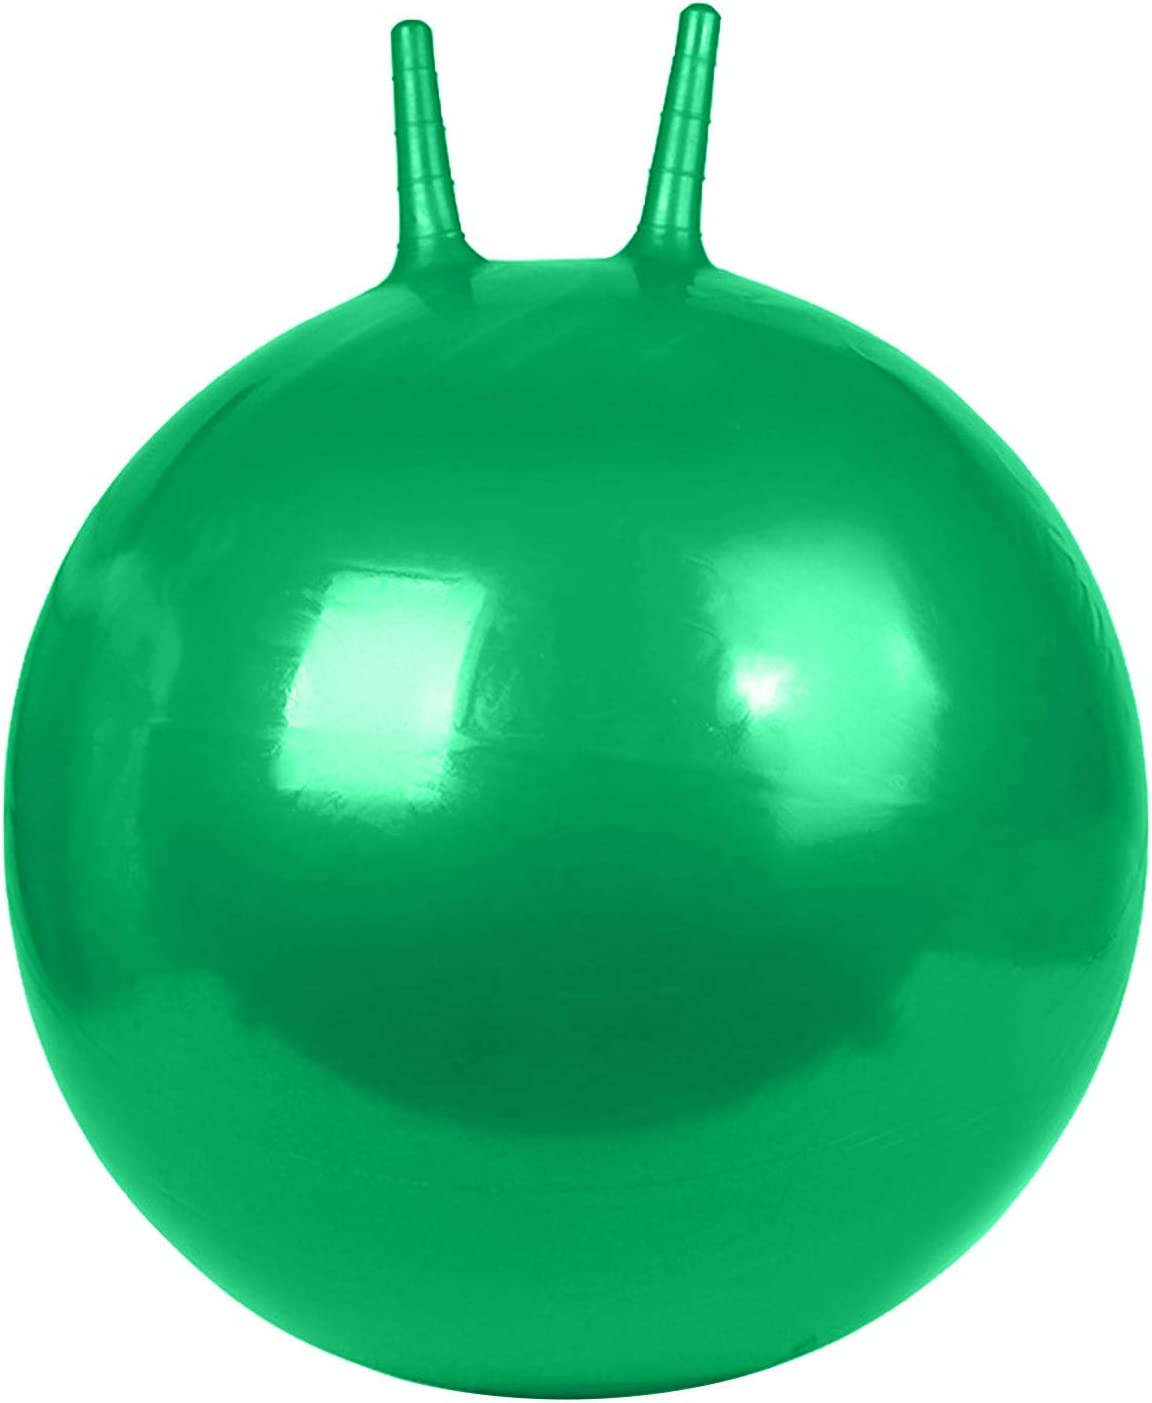 LONGZUVS Hop Ball for Kids and Adults, 18in Inflatable Bounce Ho